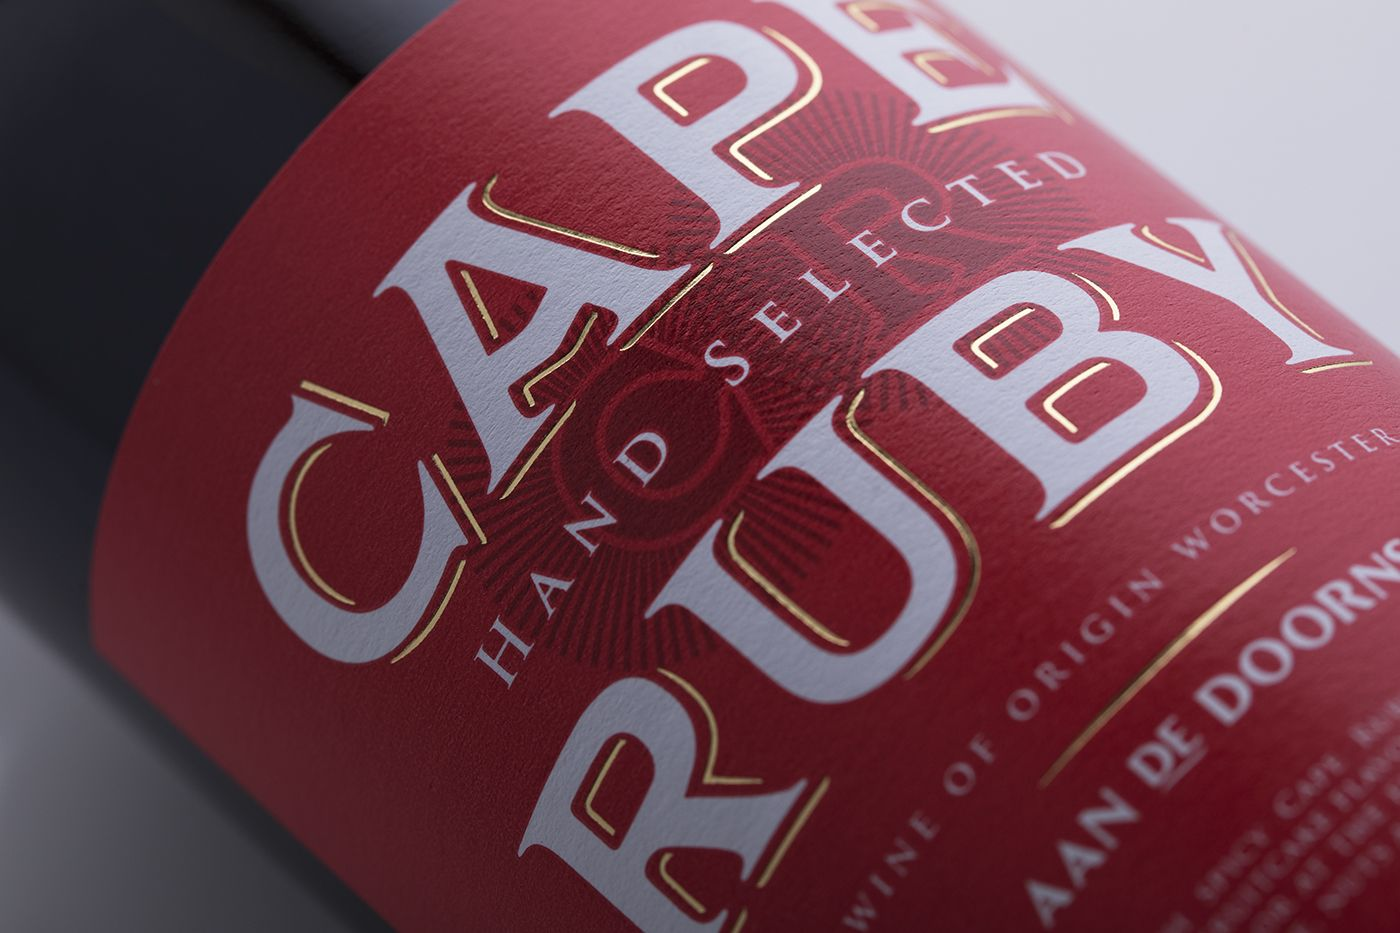 Stronger Shelf Presence With Packaging Design Revitalisation Of South African Cape Ruby Wine Brand Wine Brands Port Wine Labels Packaging Design